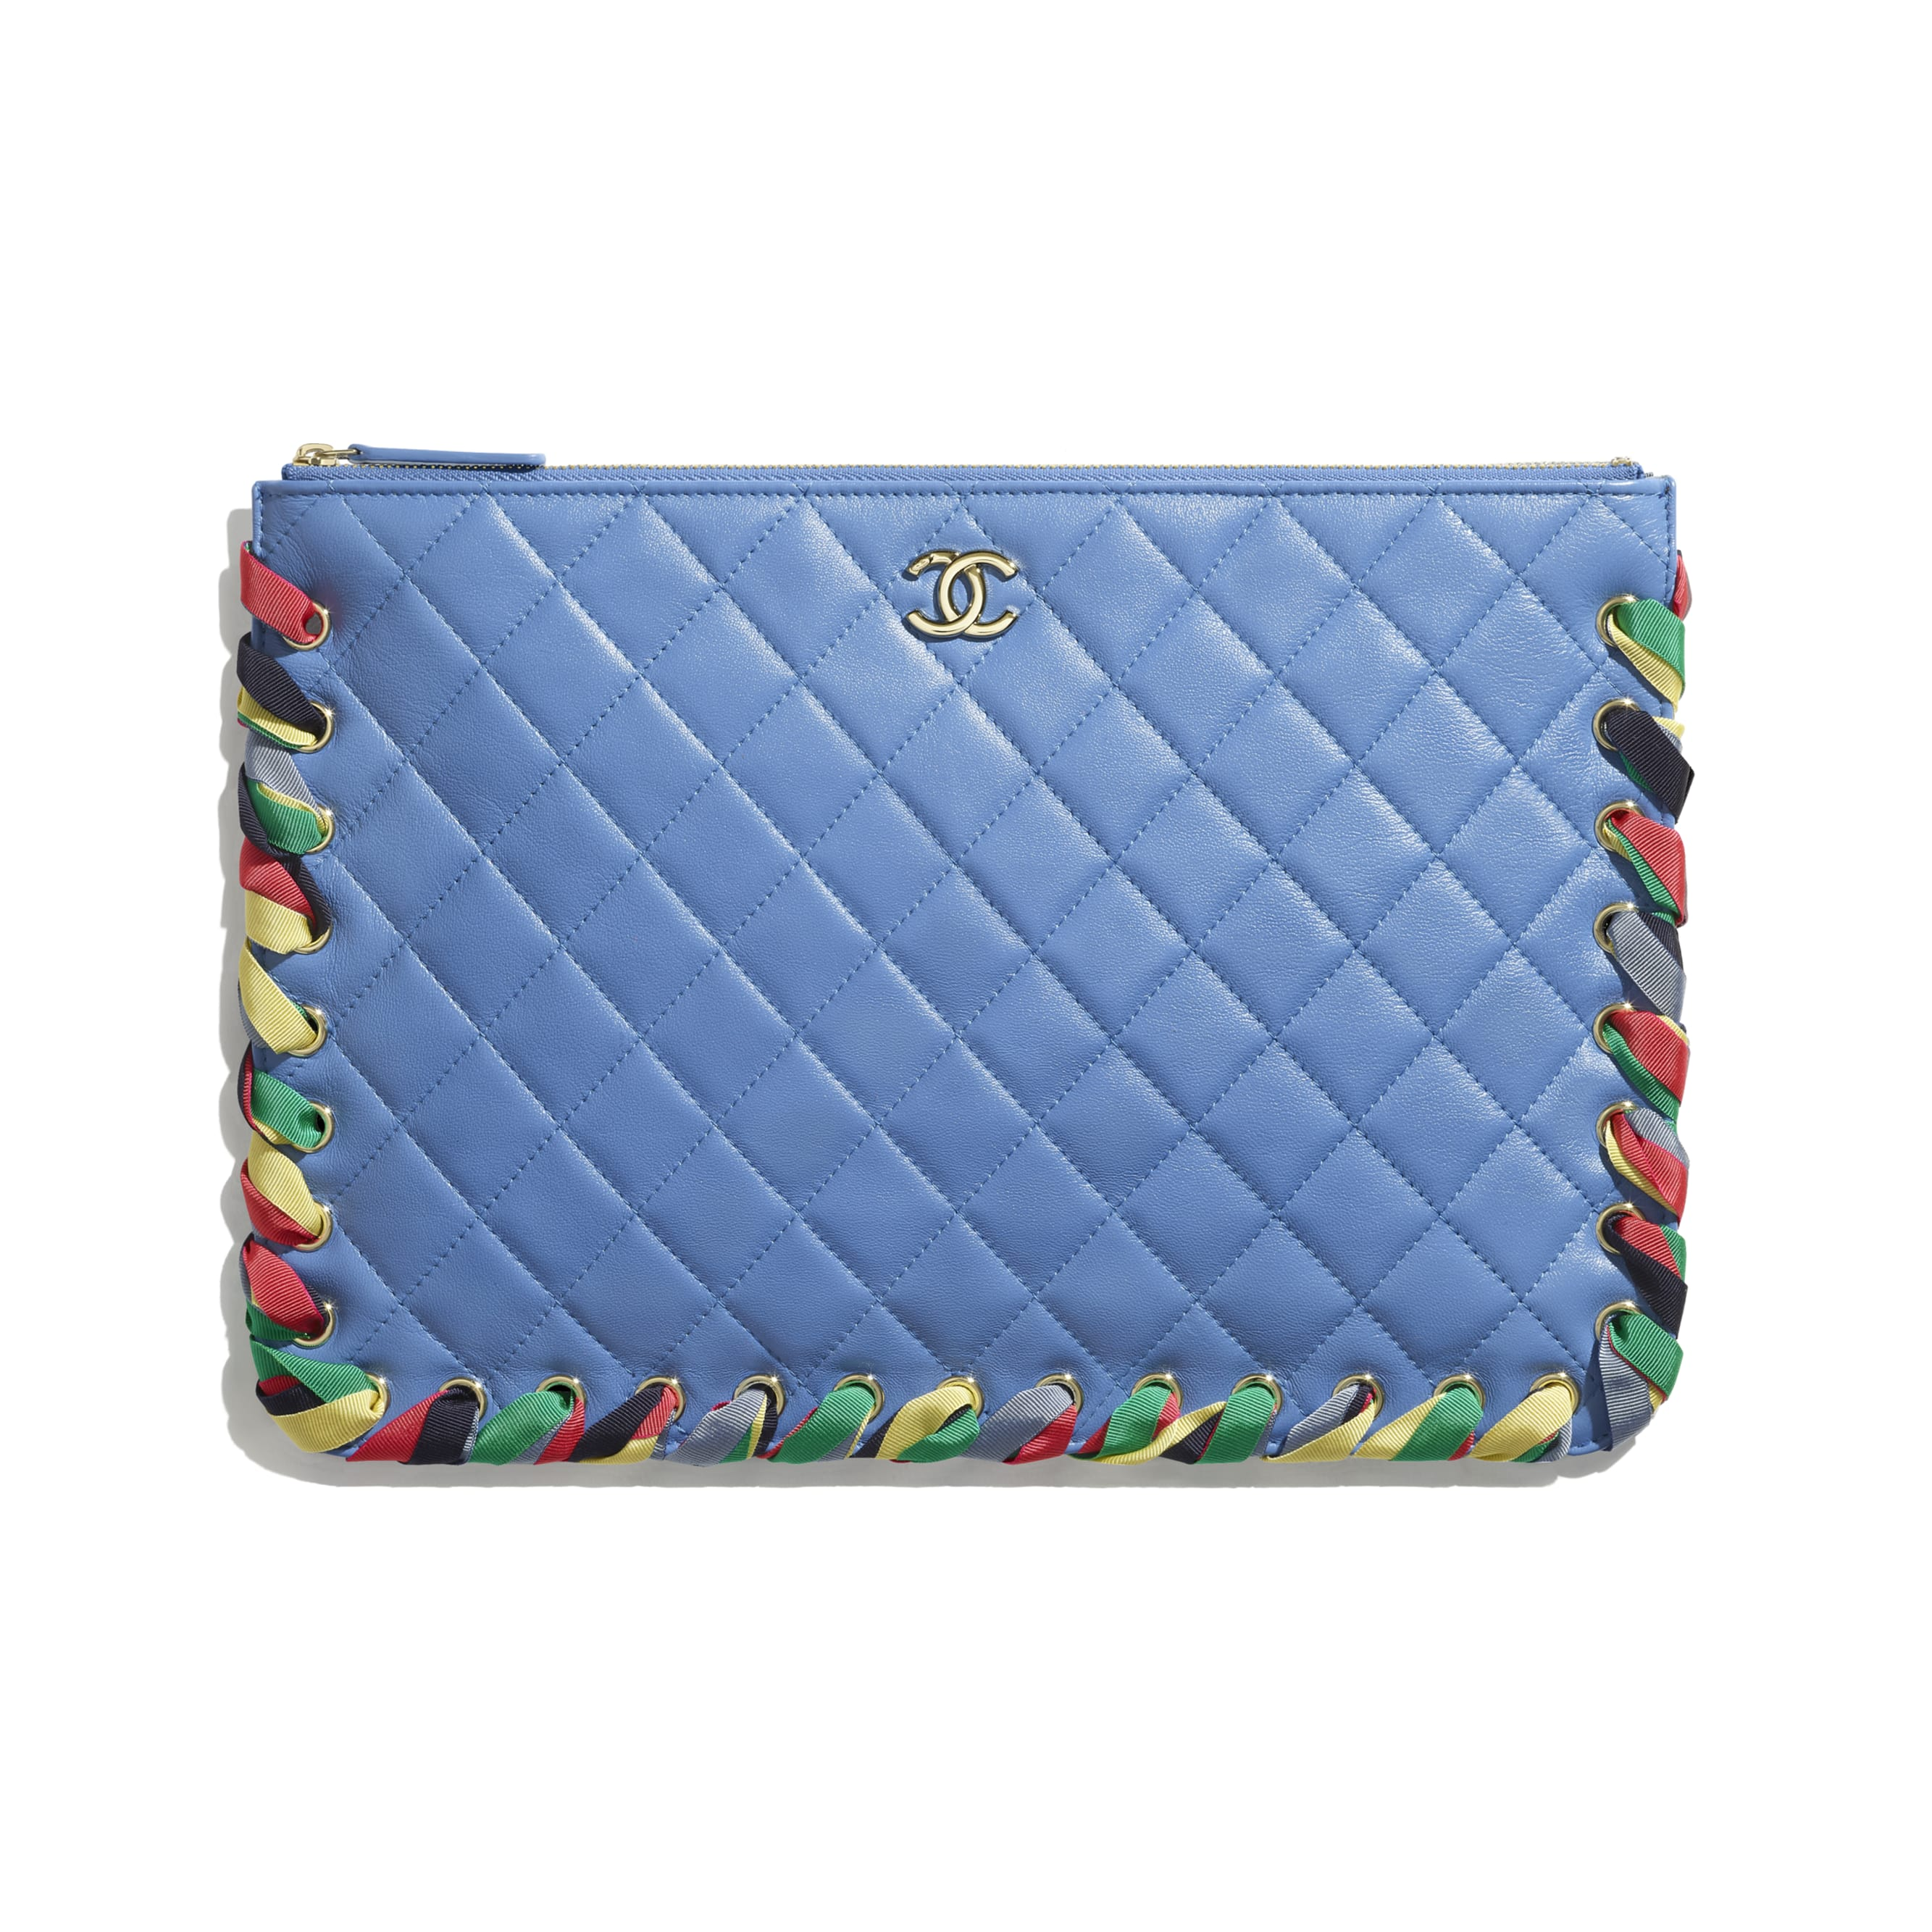 Pouch - Blue - Shiny Lambskin, Ribbon & Gold-Tone Metal - CHANEL - Default view - see standard sized version